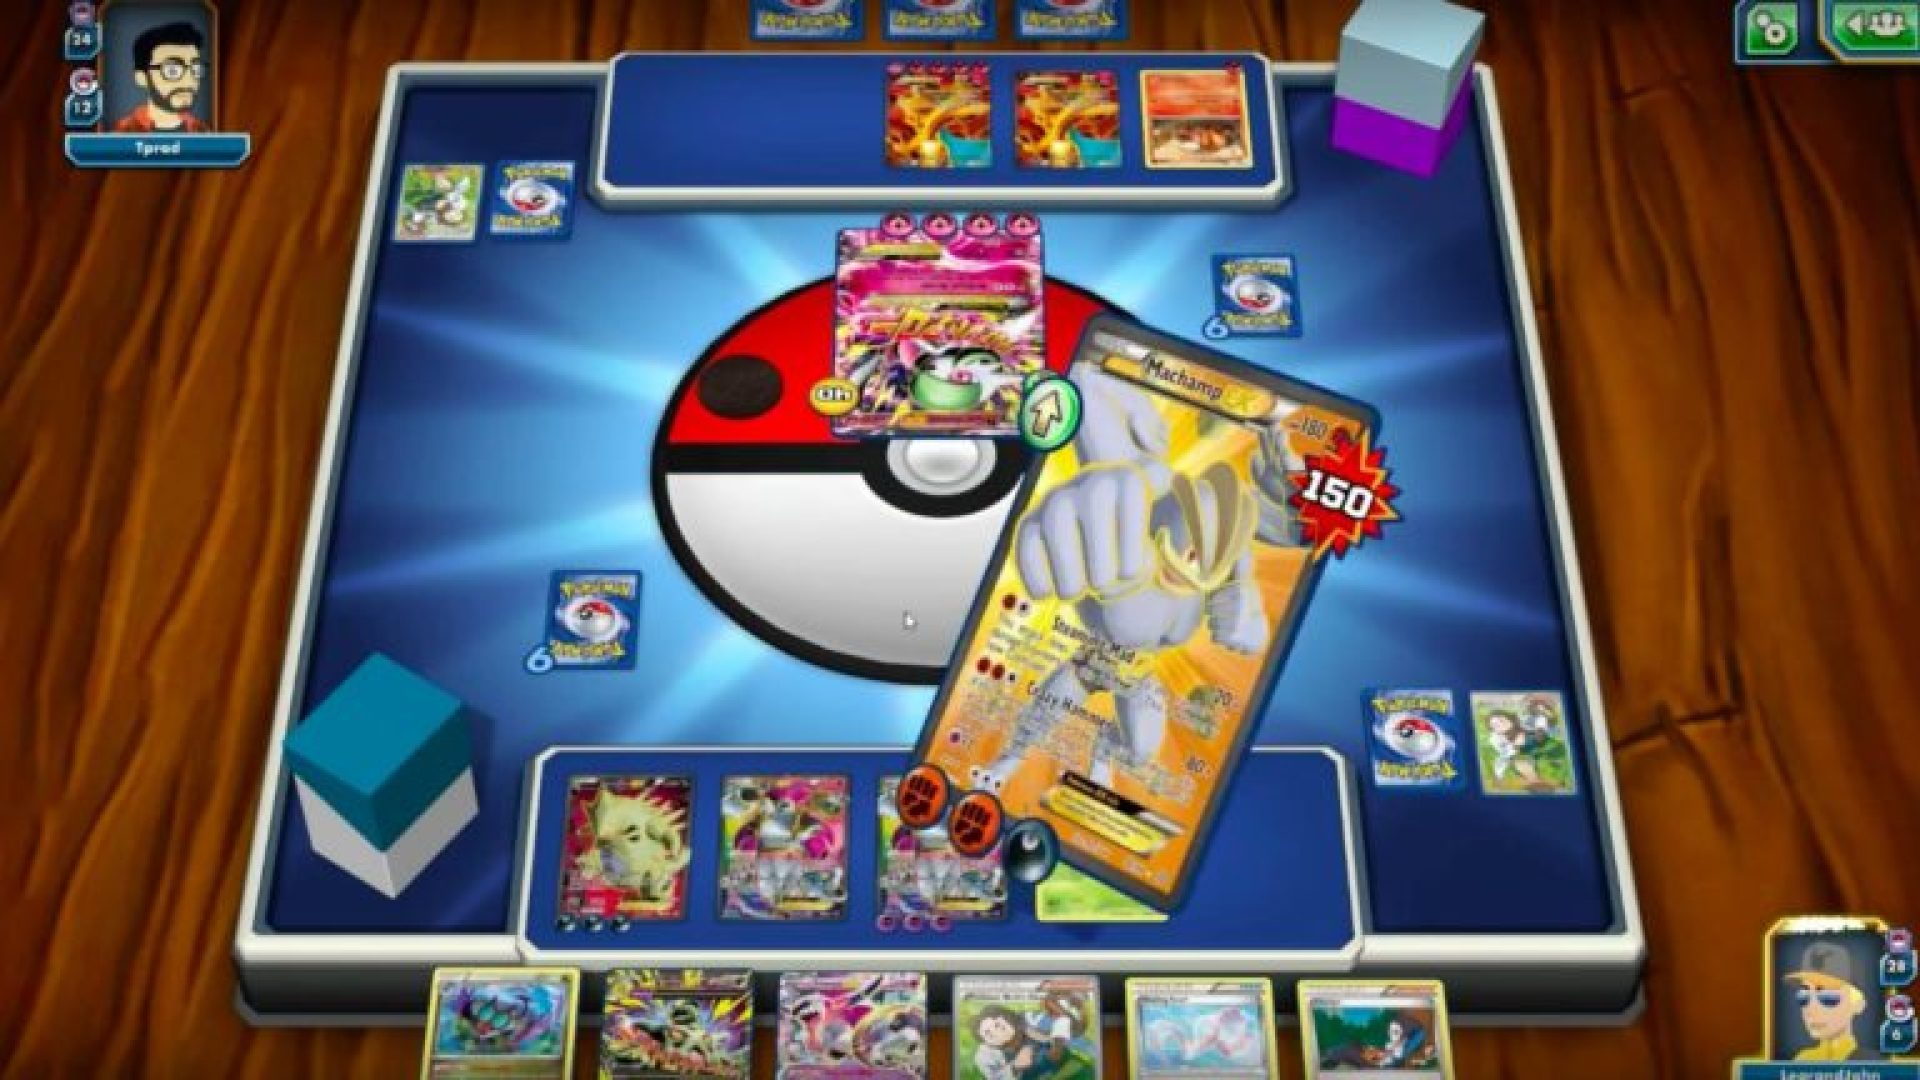 Pokémon Trading Card Game Online might be coming to Switch | PowerUp!